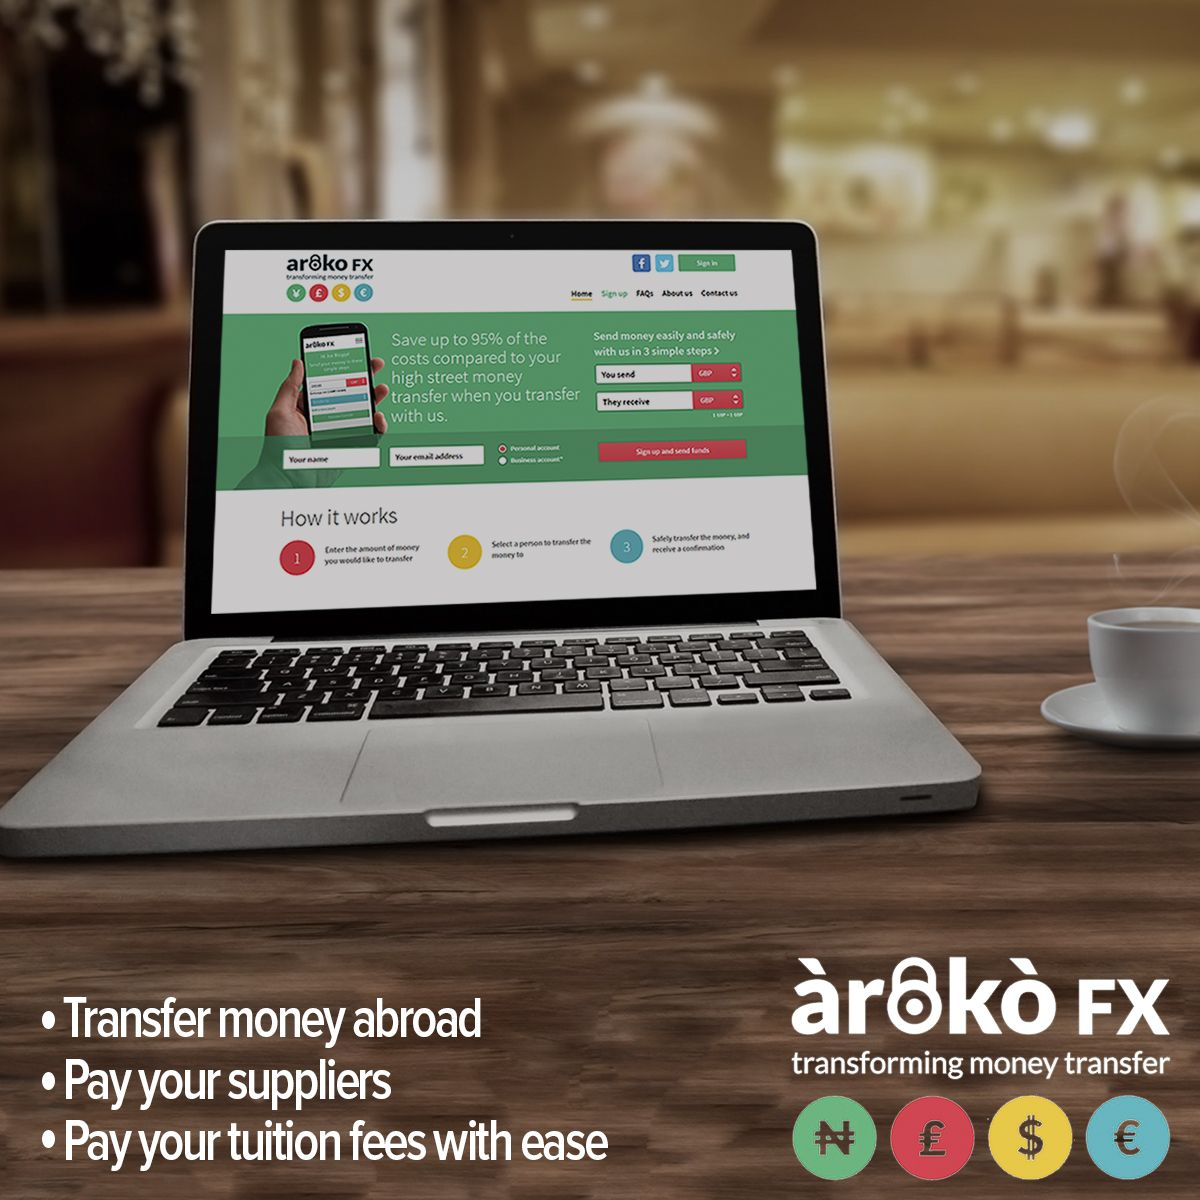 Send money through arokofx the home of best rates save